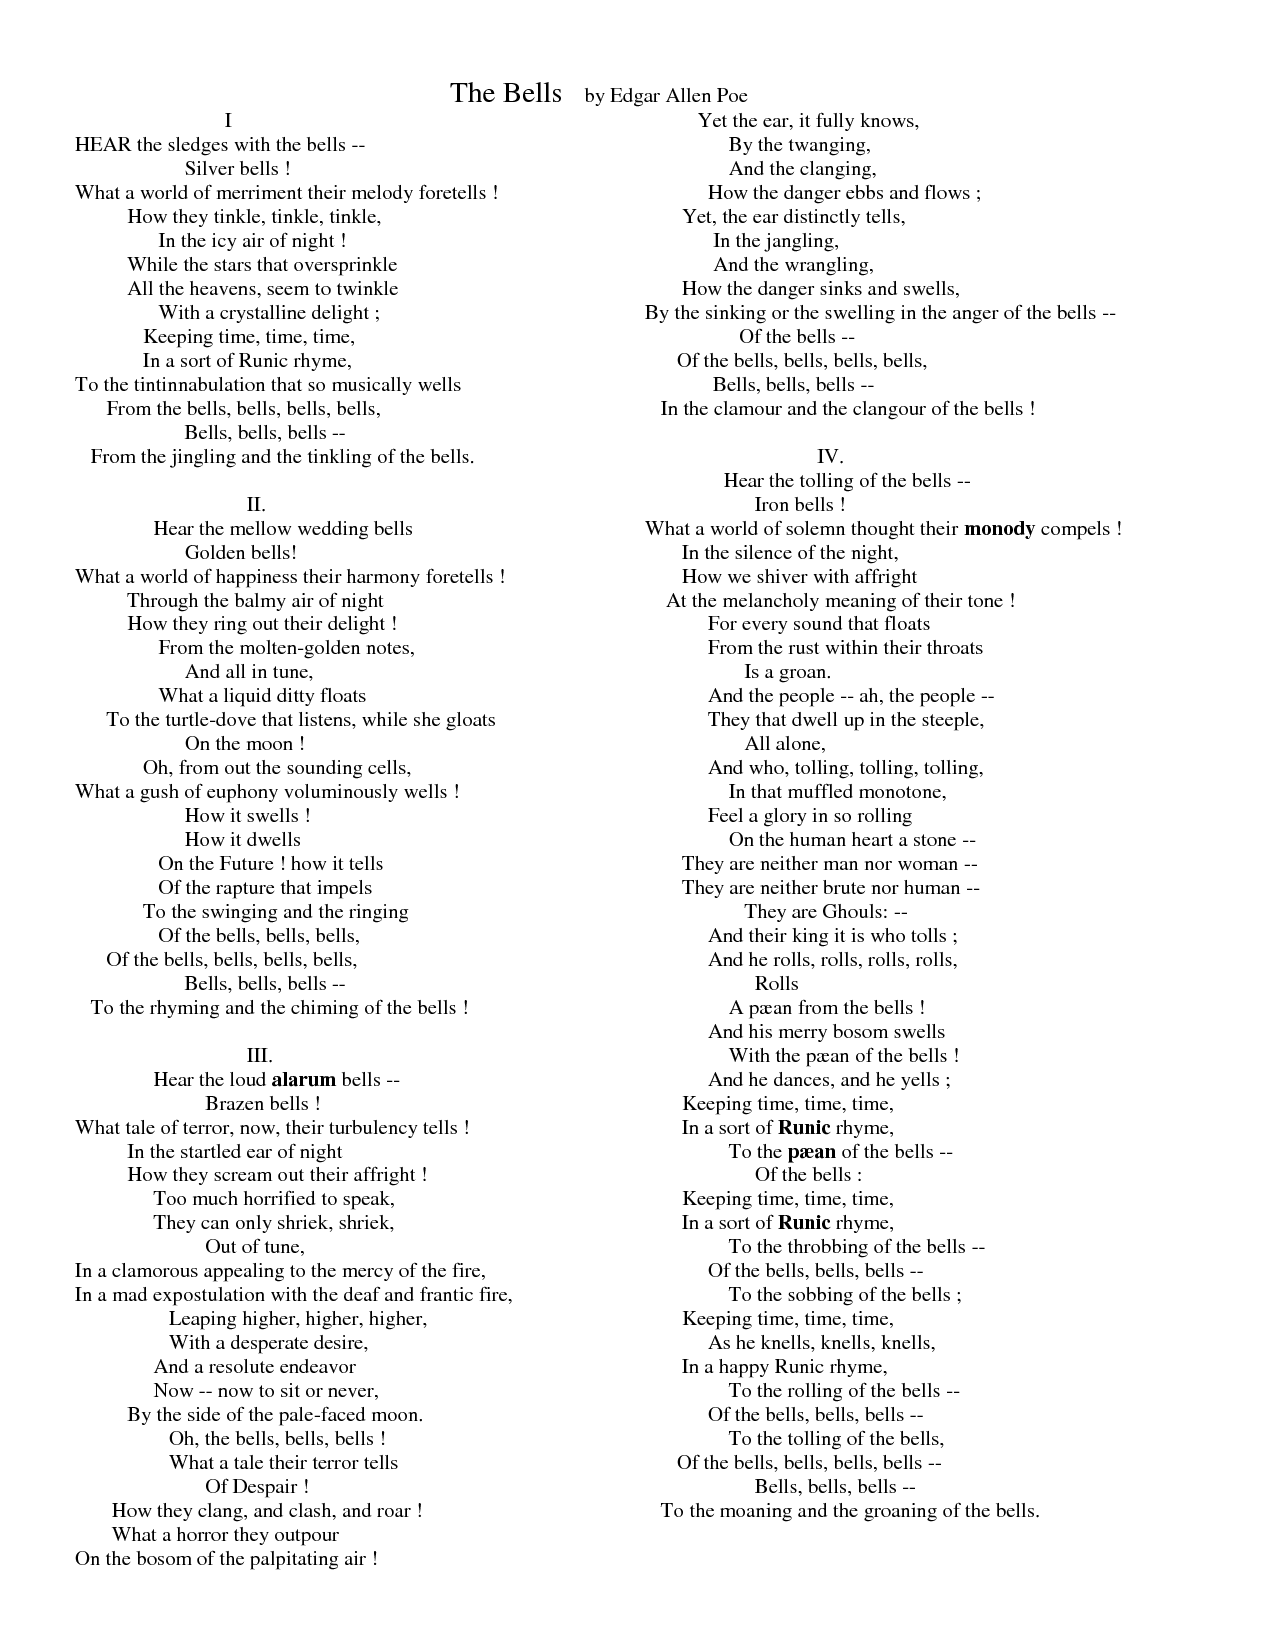 The Bells by Edgar Allen Poe - Props for the use of the word ...